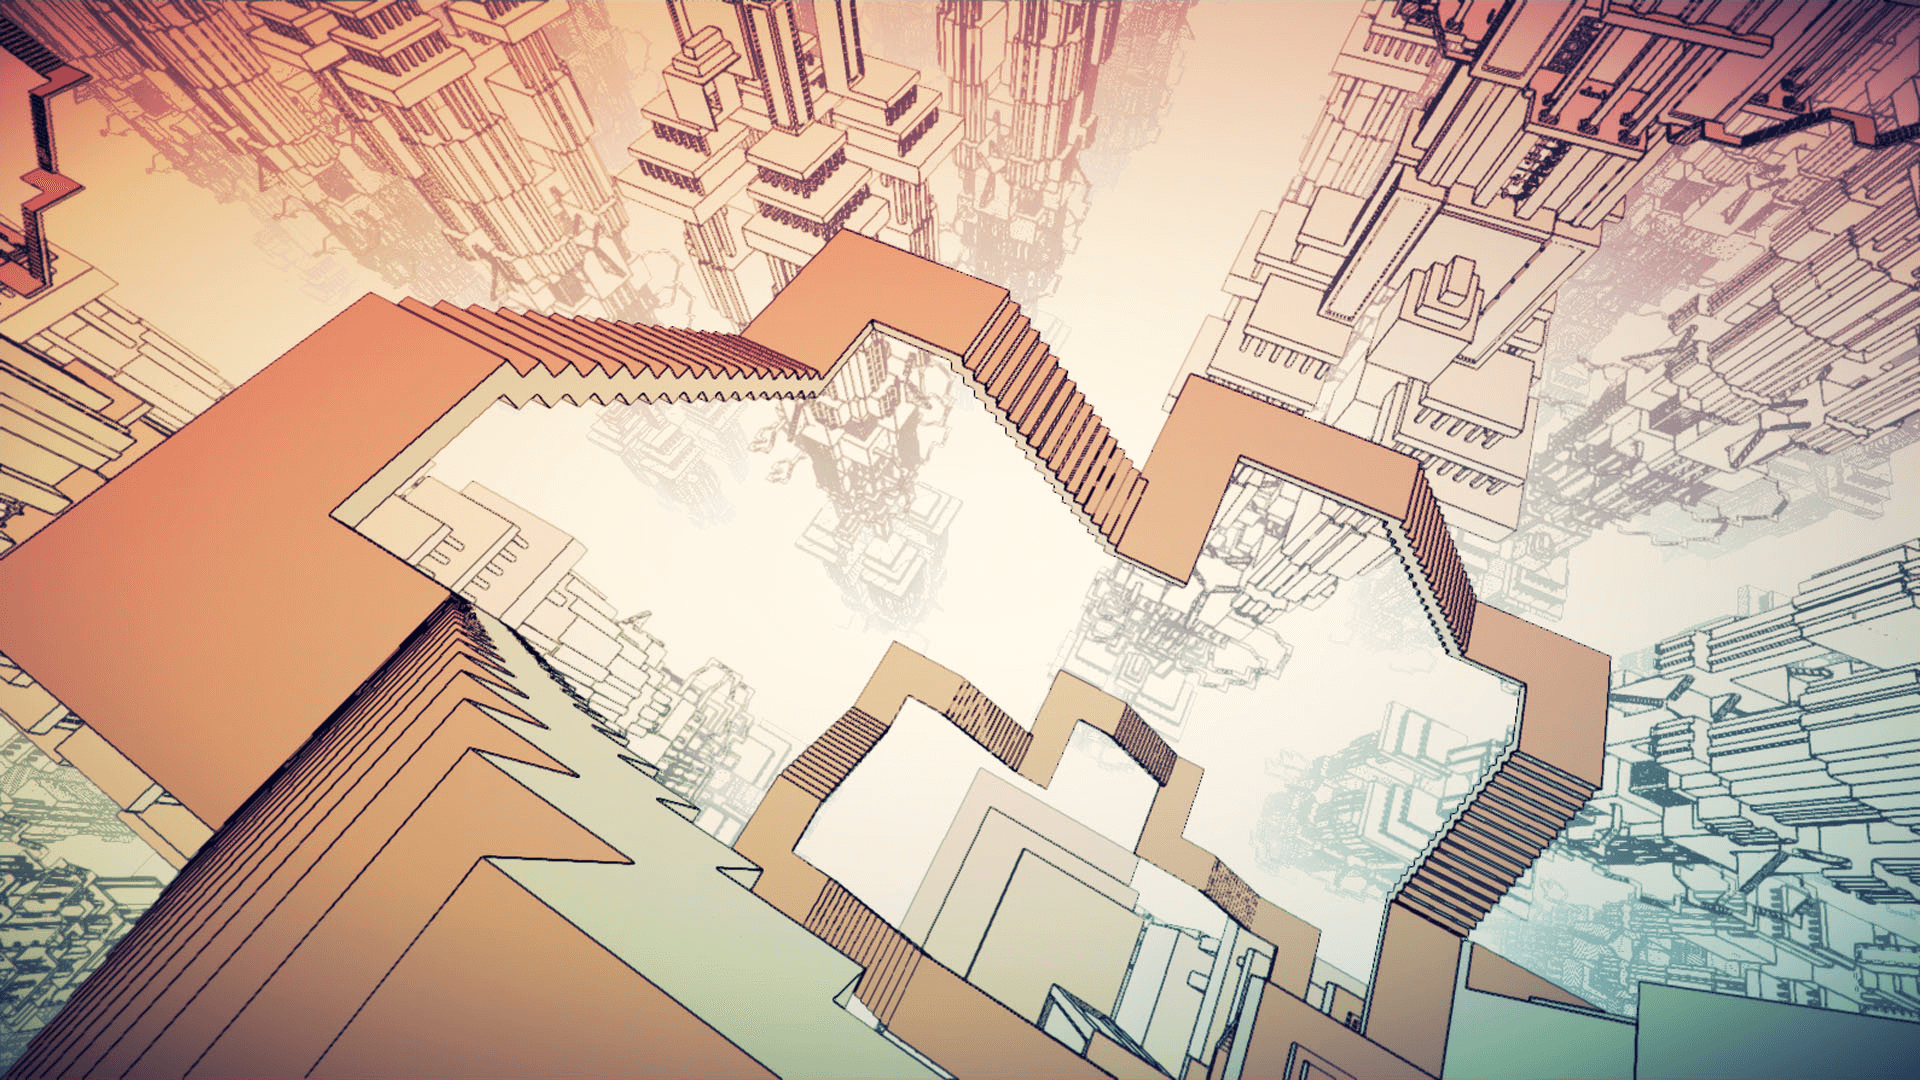 manifoldgarden_screenshot_09